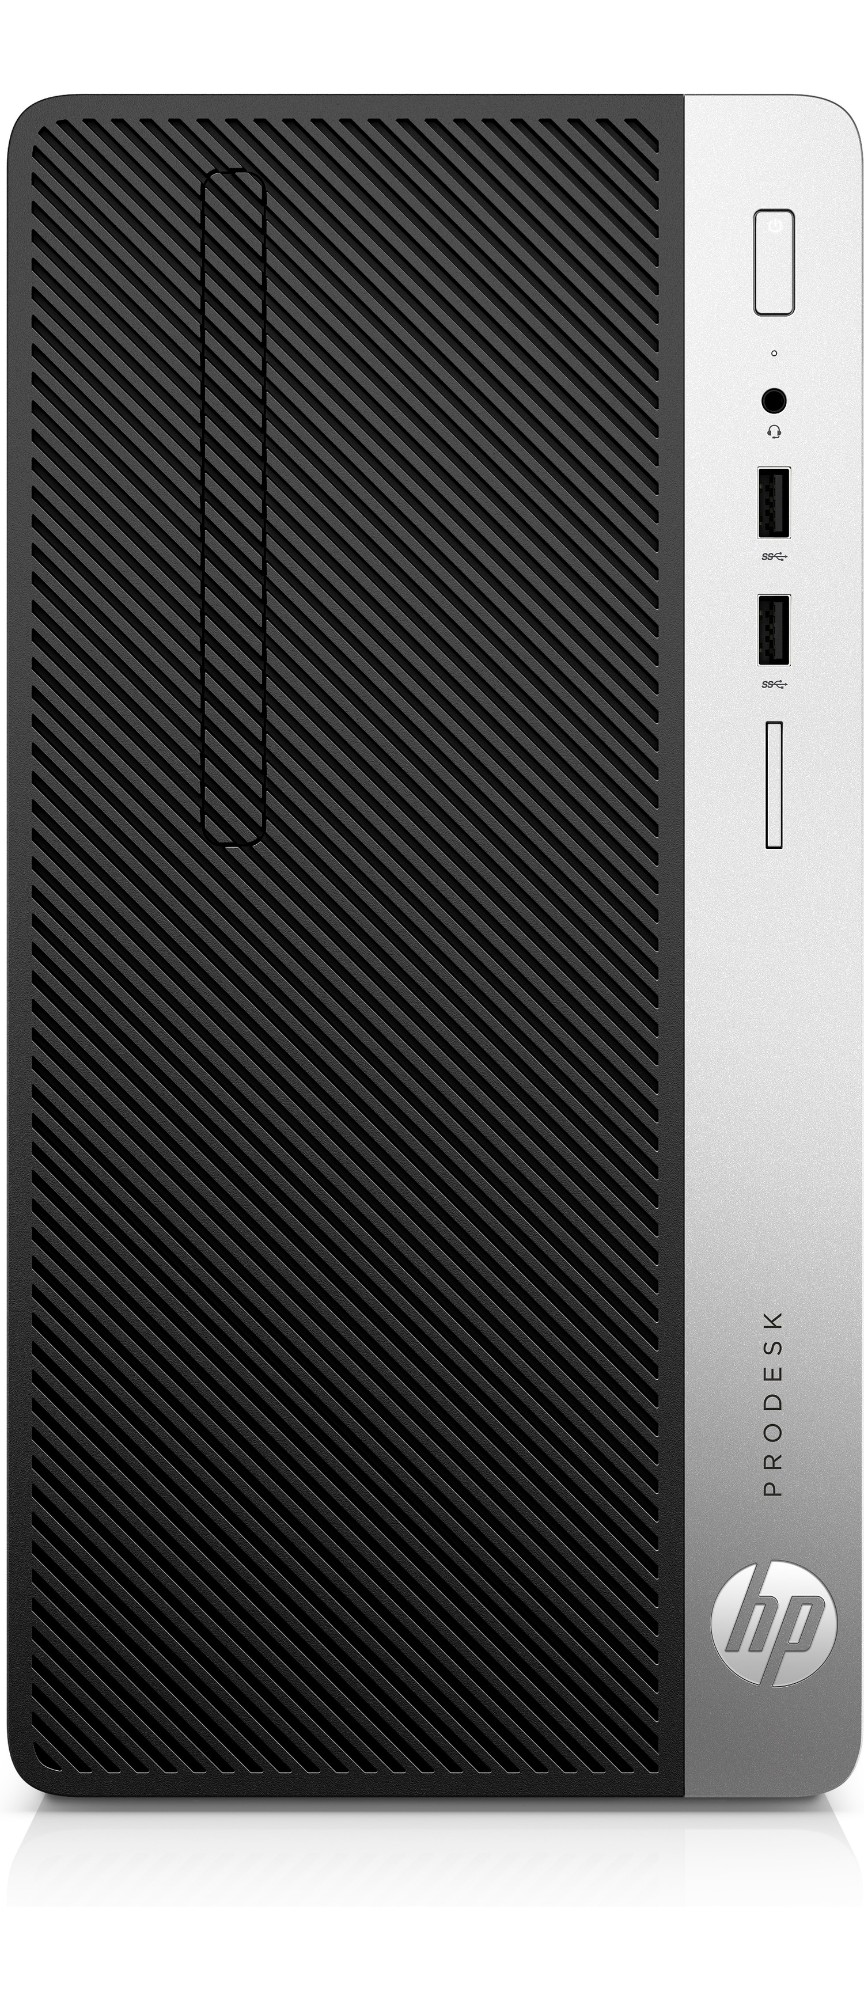 HP ProDesk 400 G4 3.7GHz i3-6100 Micro Tower Black, Silver PC